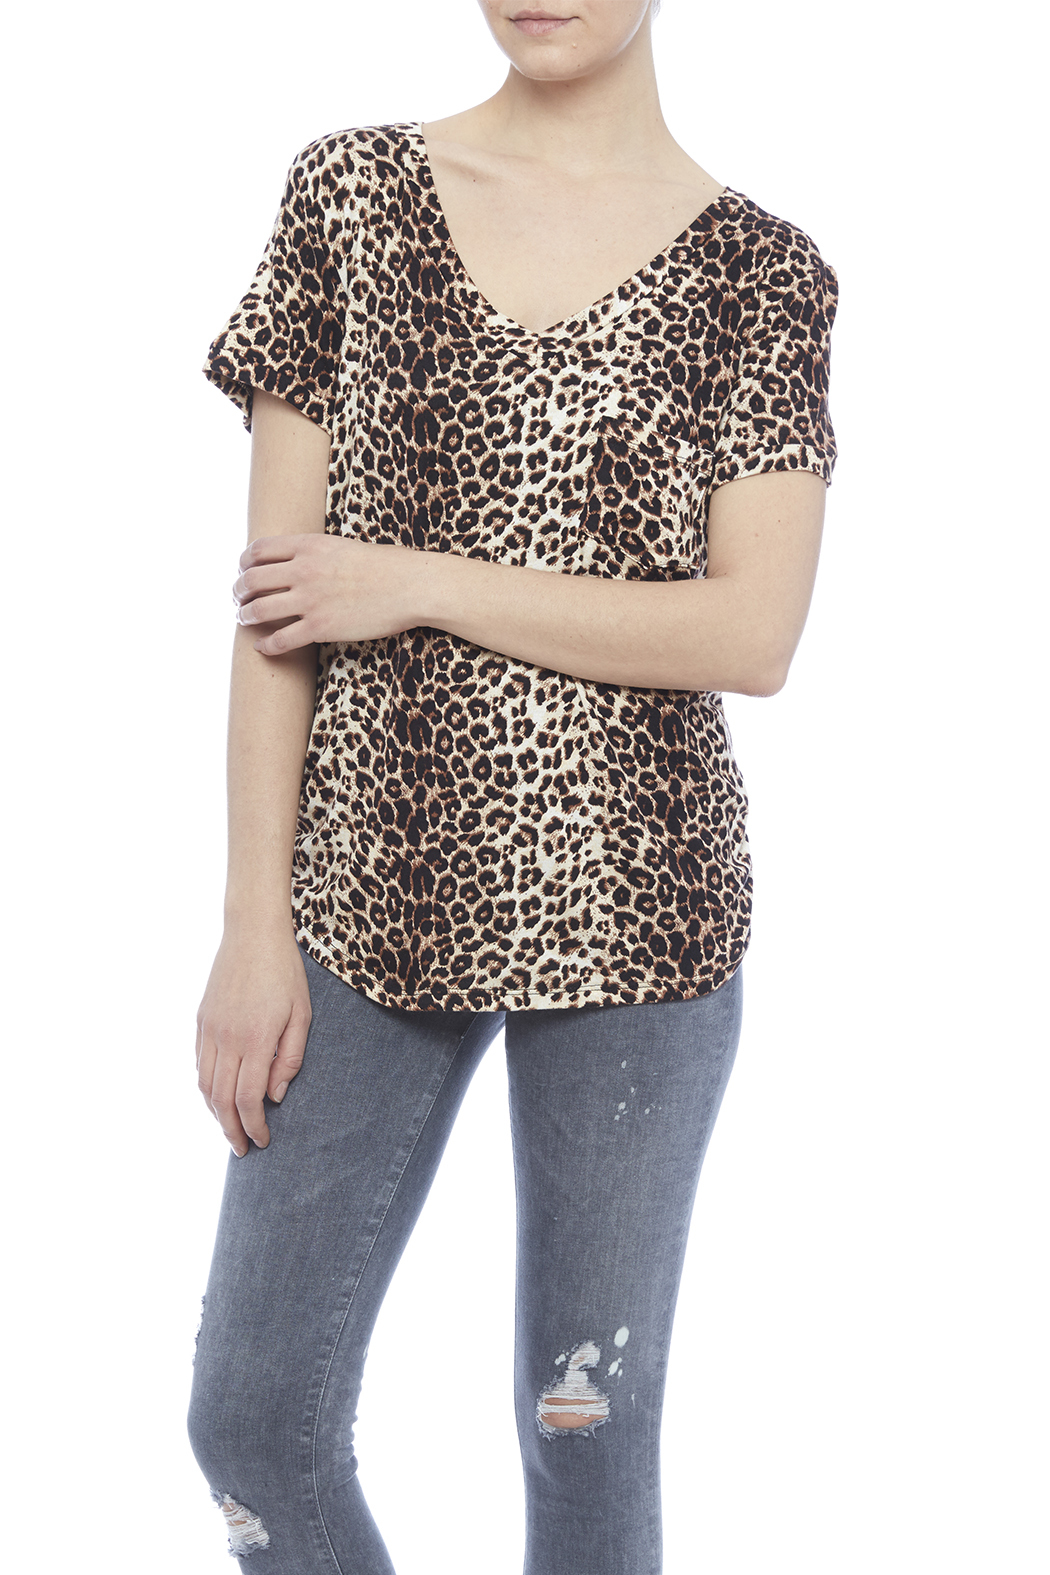 LIBIAN Leopard Print Top - Main Image